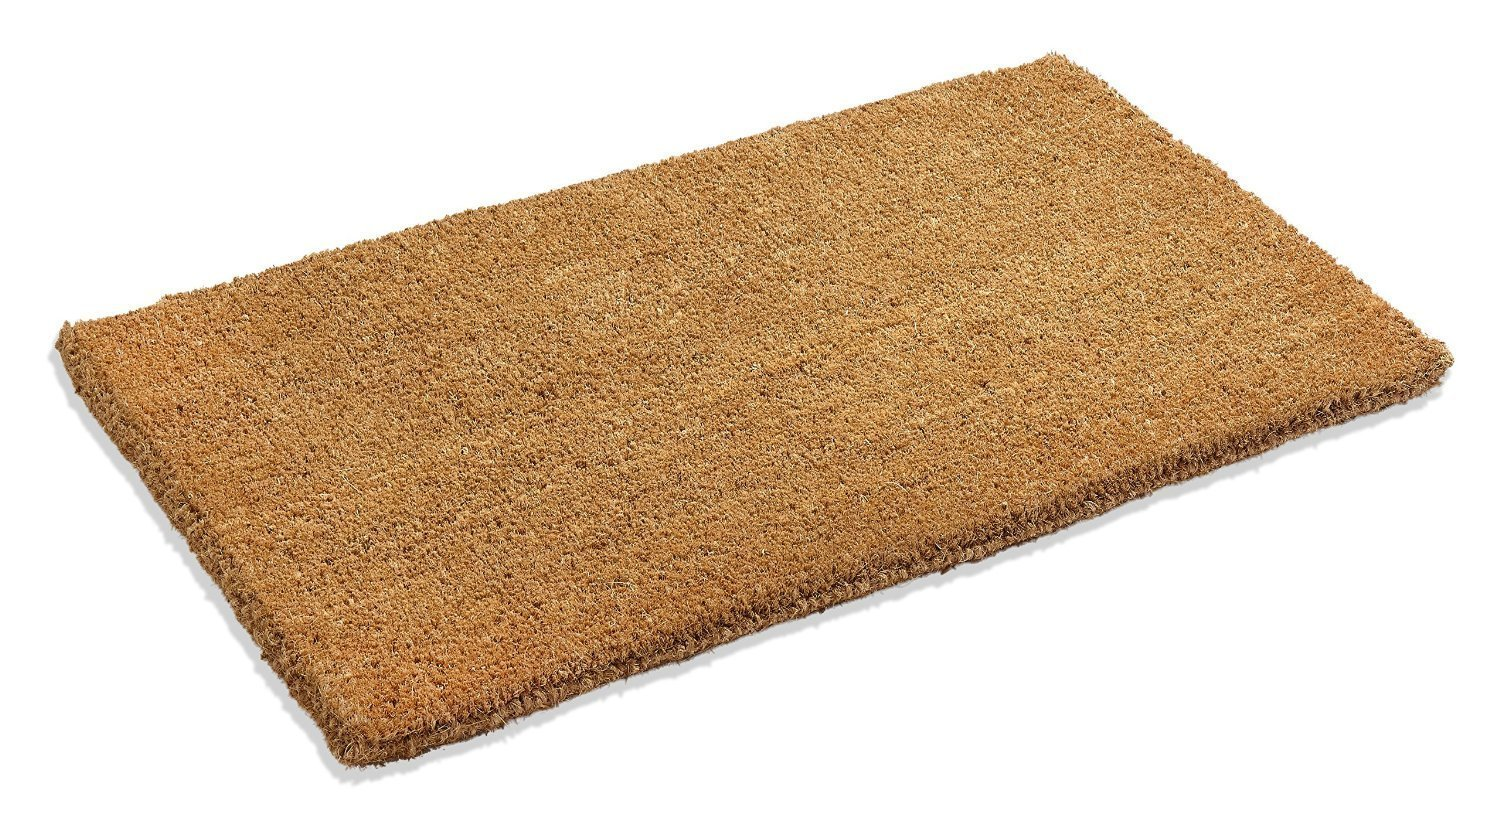 Amazon.com  Kempf Natural Coco Coir Doormat 18 by 30 by 1-Inch  Door Mat  Garden \u0026 Outdoor  sc 1 st  Amazon.com : mat door - pezcame.com